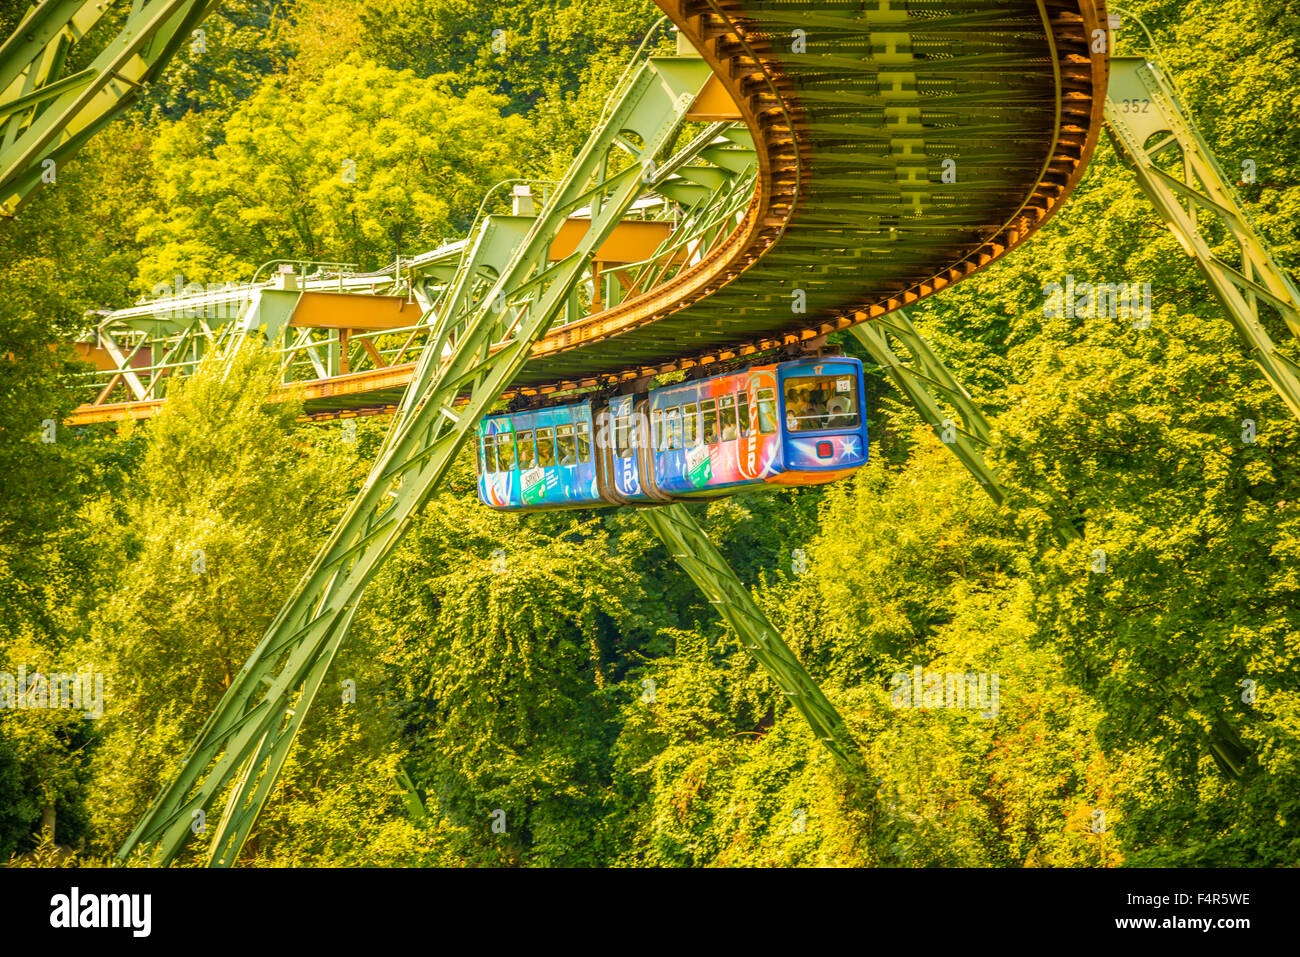 Bergisches land, Germany, Europe, elevated, railway, Nordrhein Westphalia, suspension  railroad, transport, traffic, Stock Photo